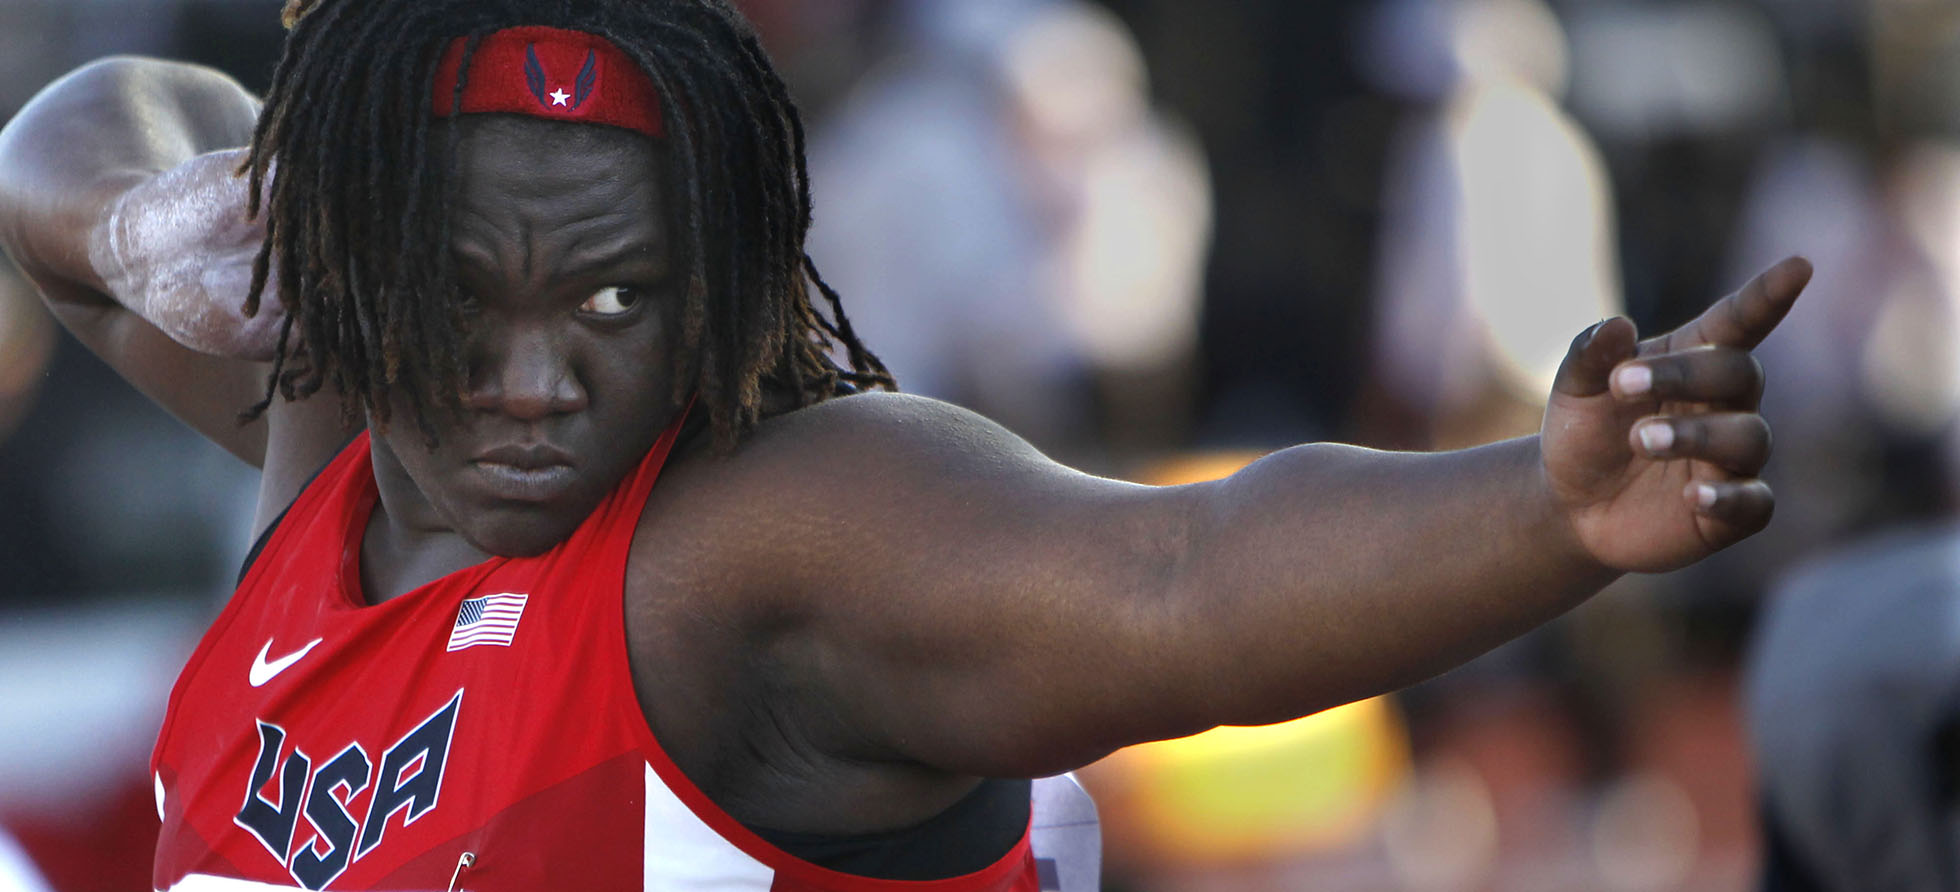 USA shot putter Raven Saunders steps into the ring at the IAAF World Junior Championships at Hayward Field in Eugene on Friday, July 25, 2014. Saunders claimed second place in the shot put competition with a throw of 16.63 meters. (Andy Nelson/The Register-Guard)